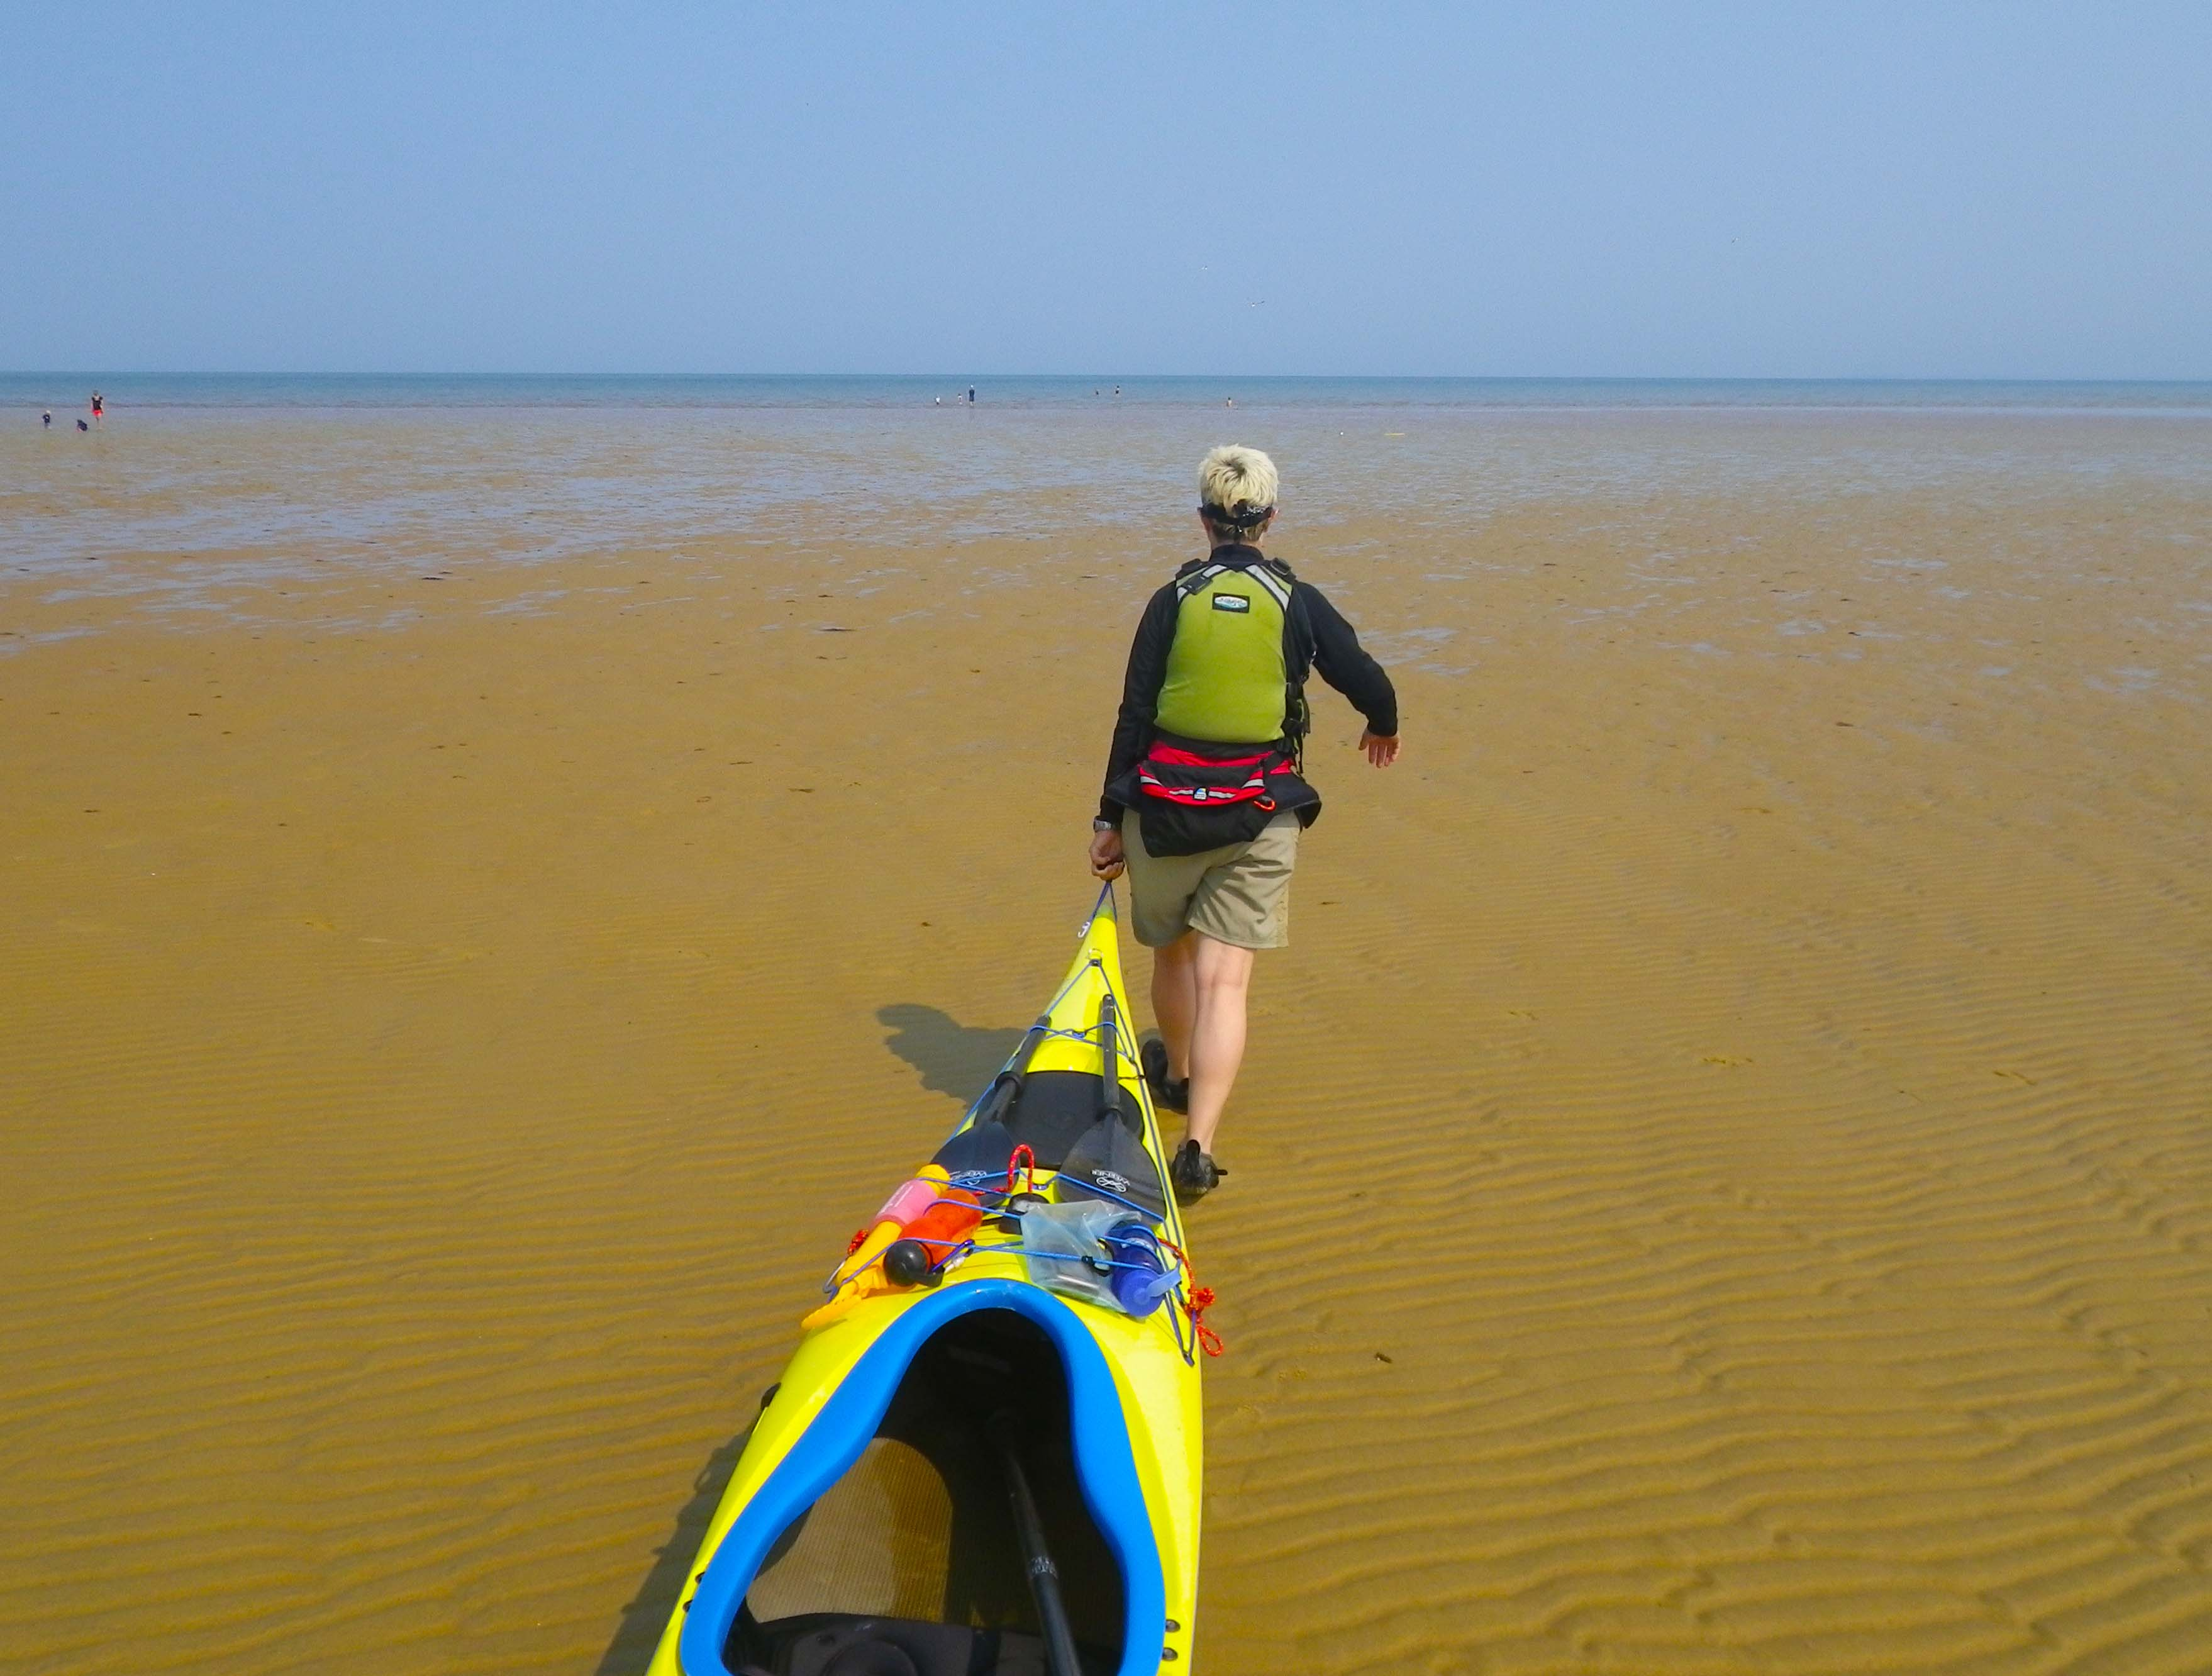 Planning kayak trips in new york harbor tide or current wind but new york nvjuhfo Choice Image